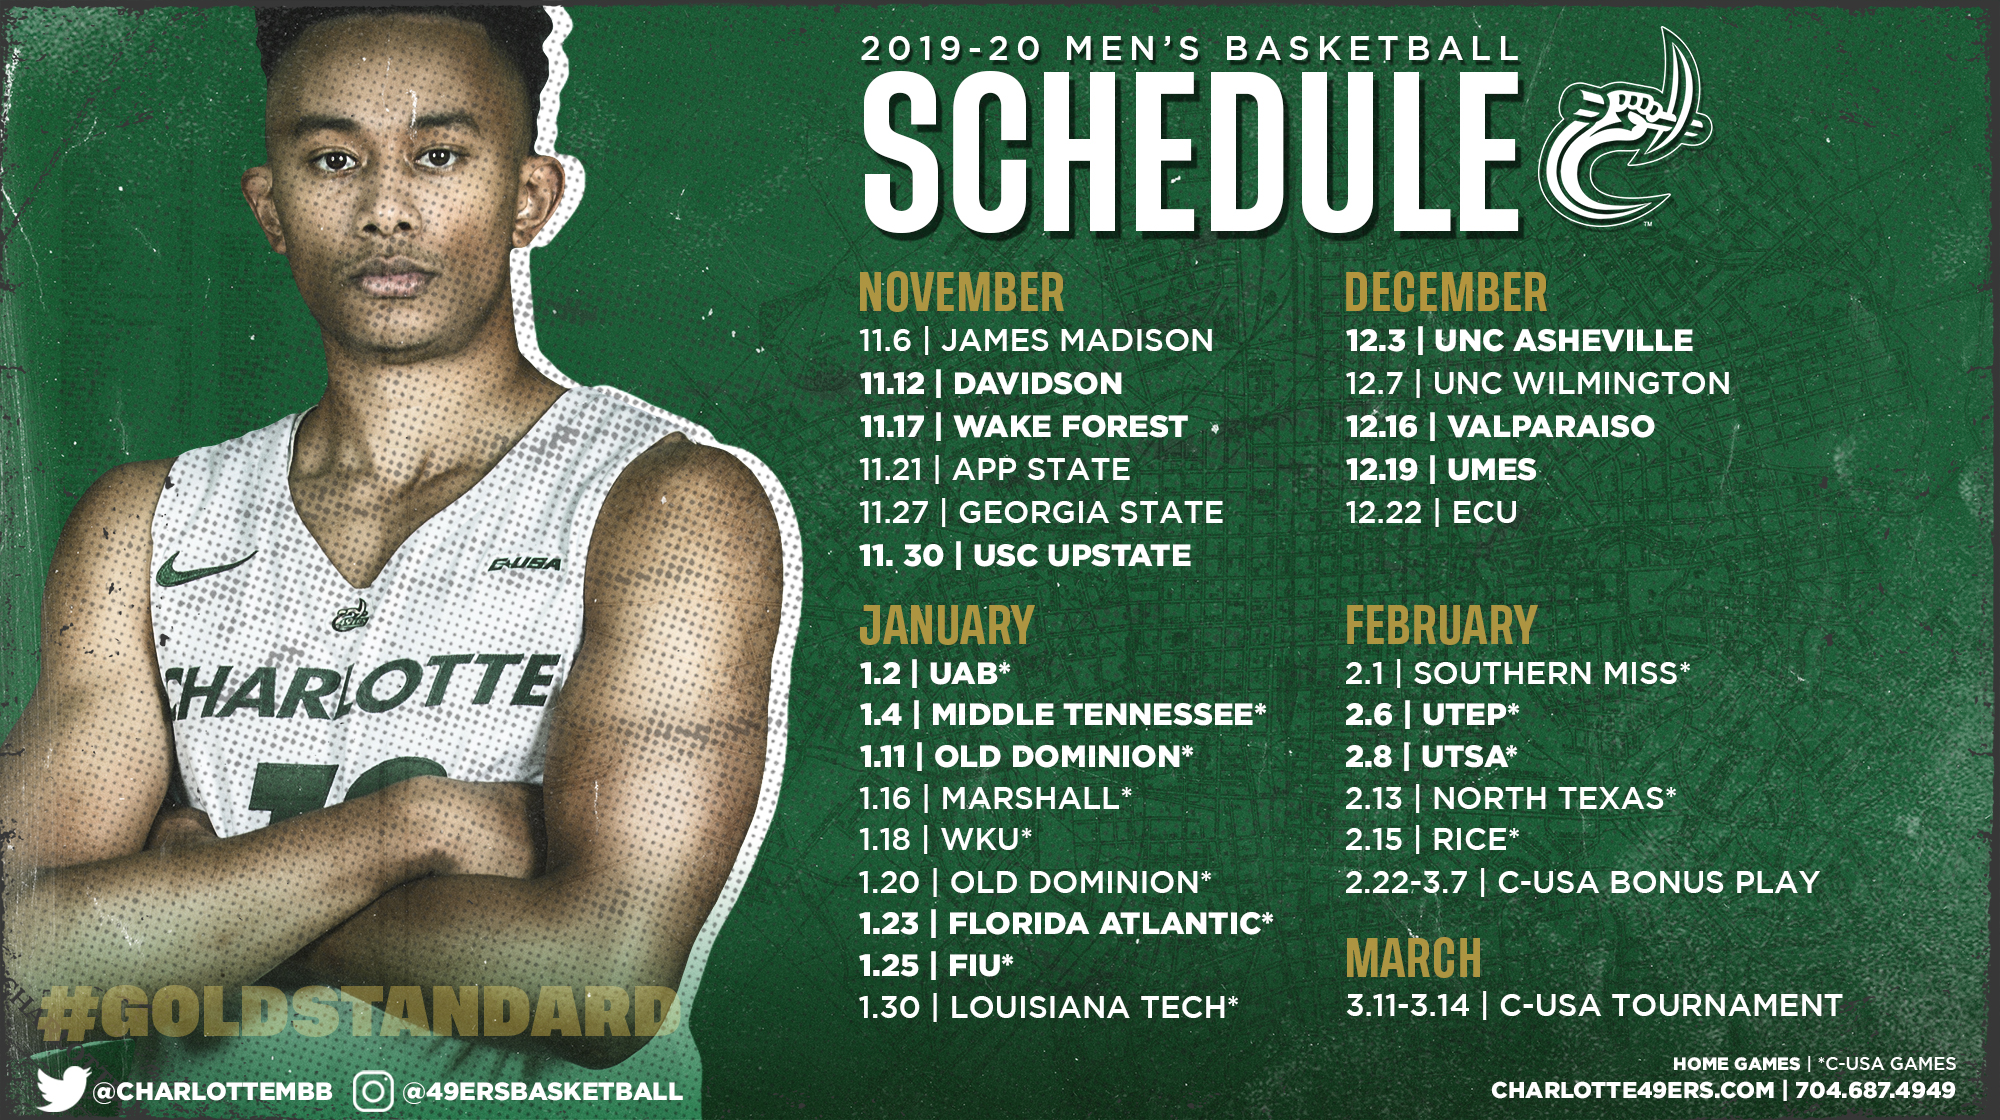 photo regarding Unc Basketball Schedule Printable named Mens Basketball Releases 2019-20 Plan - Charlotte Sporting activities